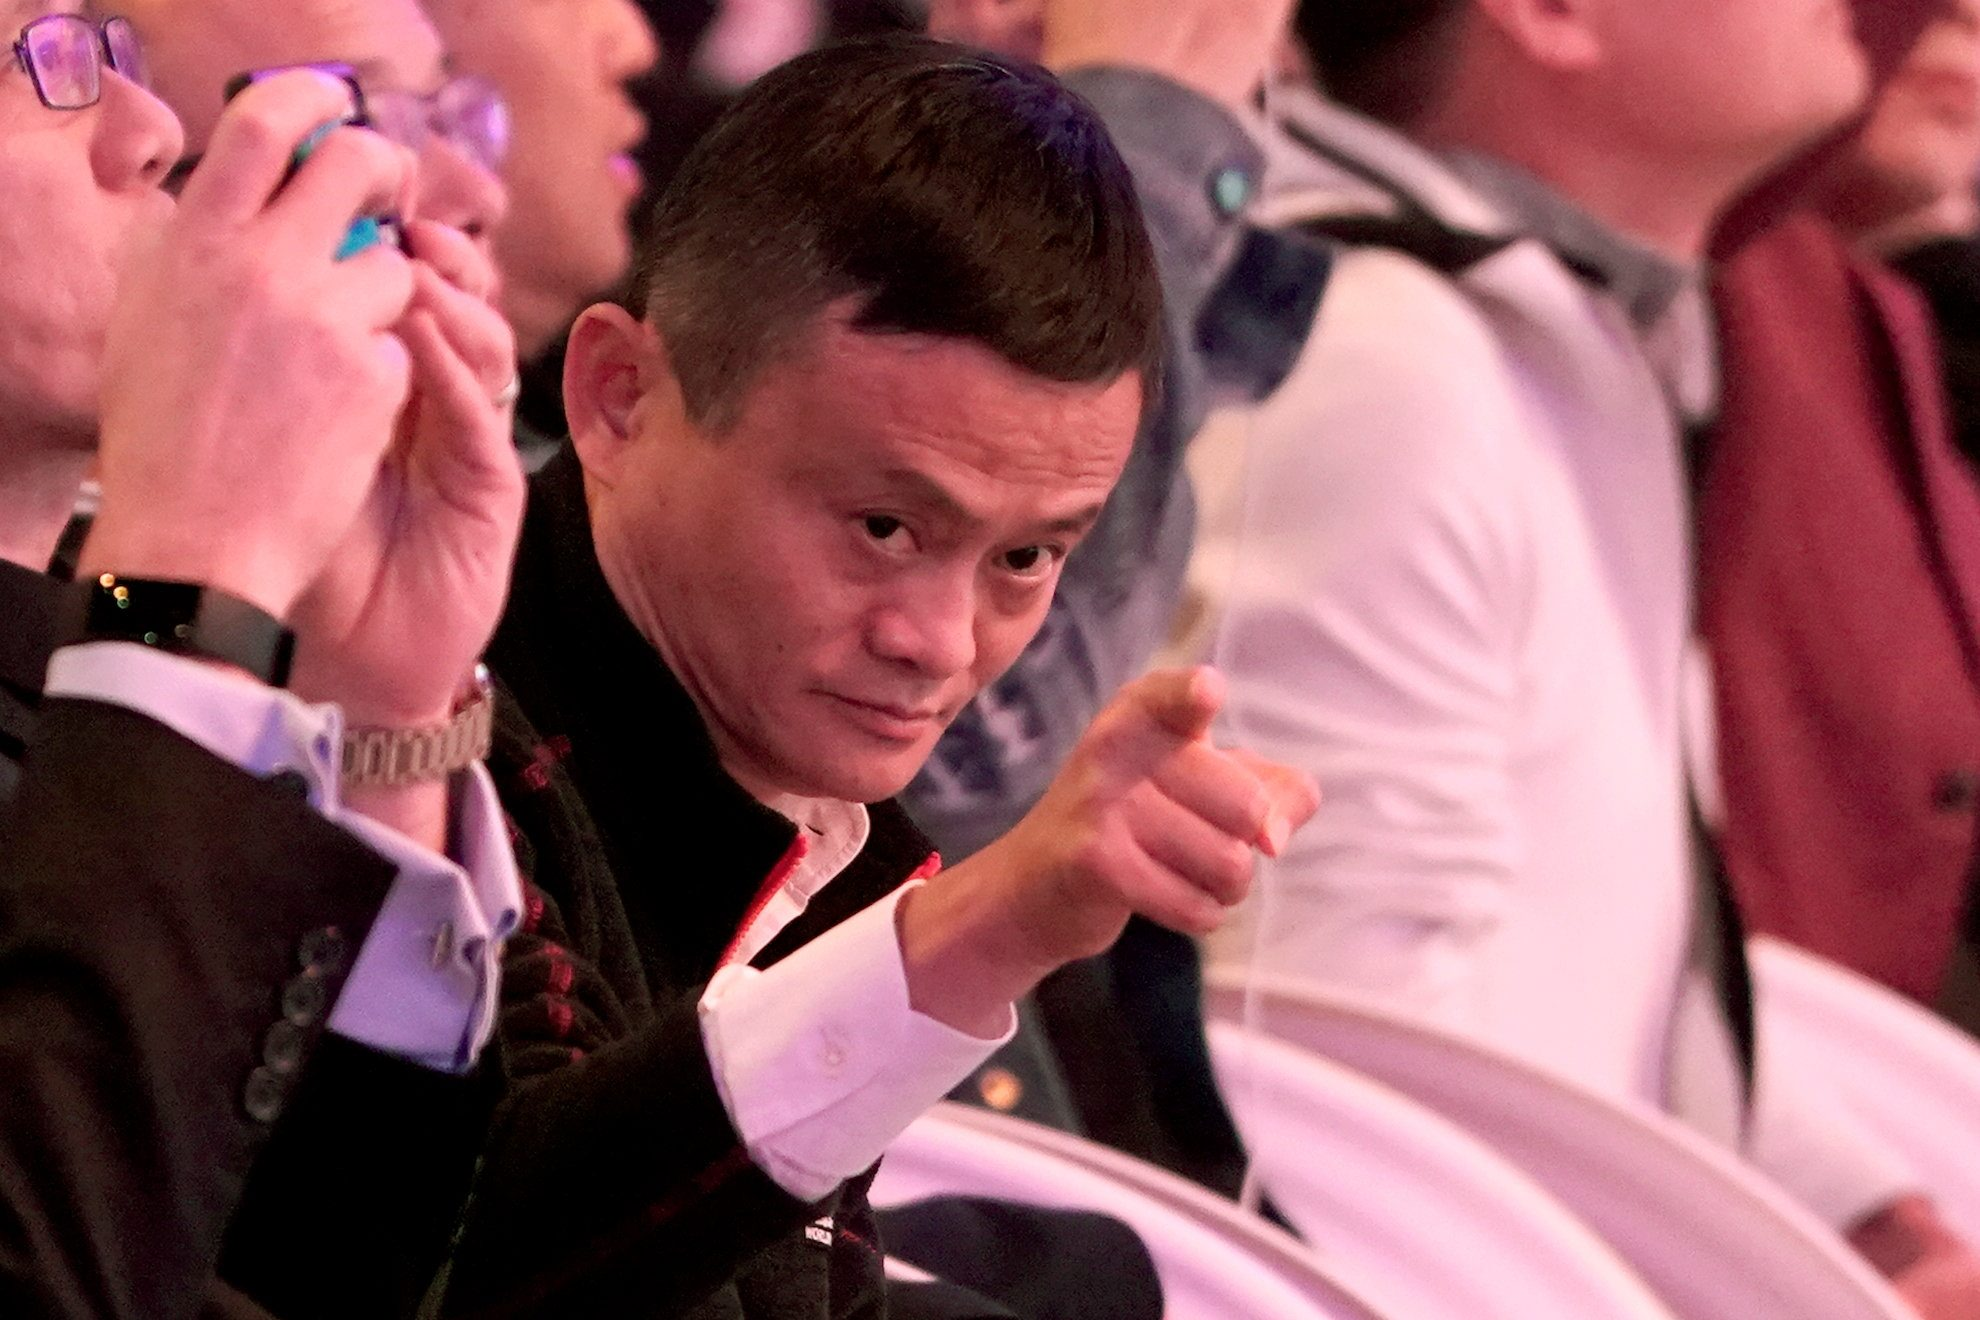 Alibaba Group co-founder and Executive Chairman Jack Ma gestures during Alibaba Group's 11.11 Singles' Day global shopping festival in Shanghai, China, November 11, 2018. REUTERS/Aly Song